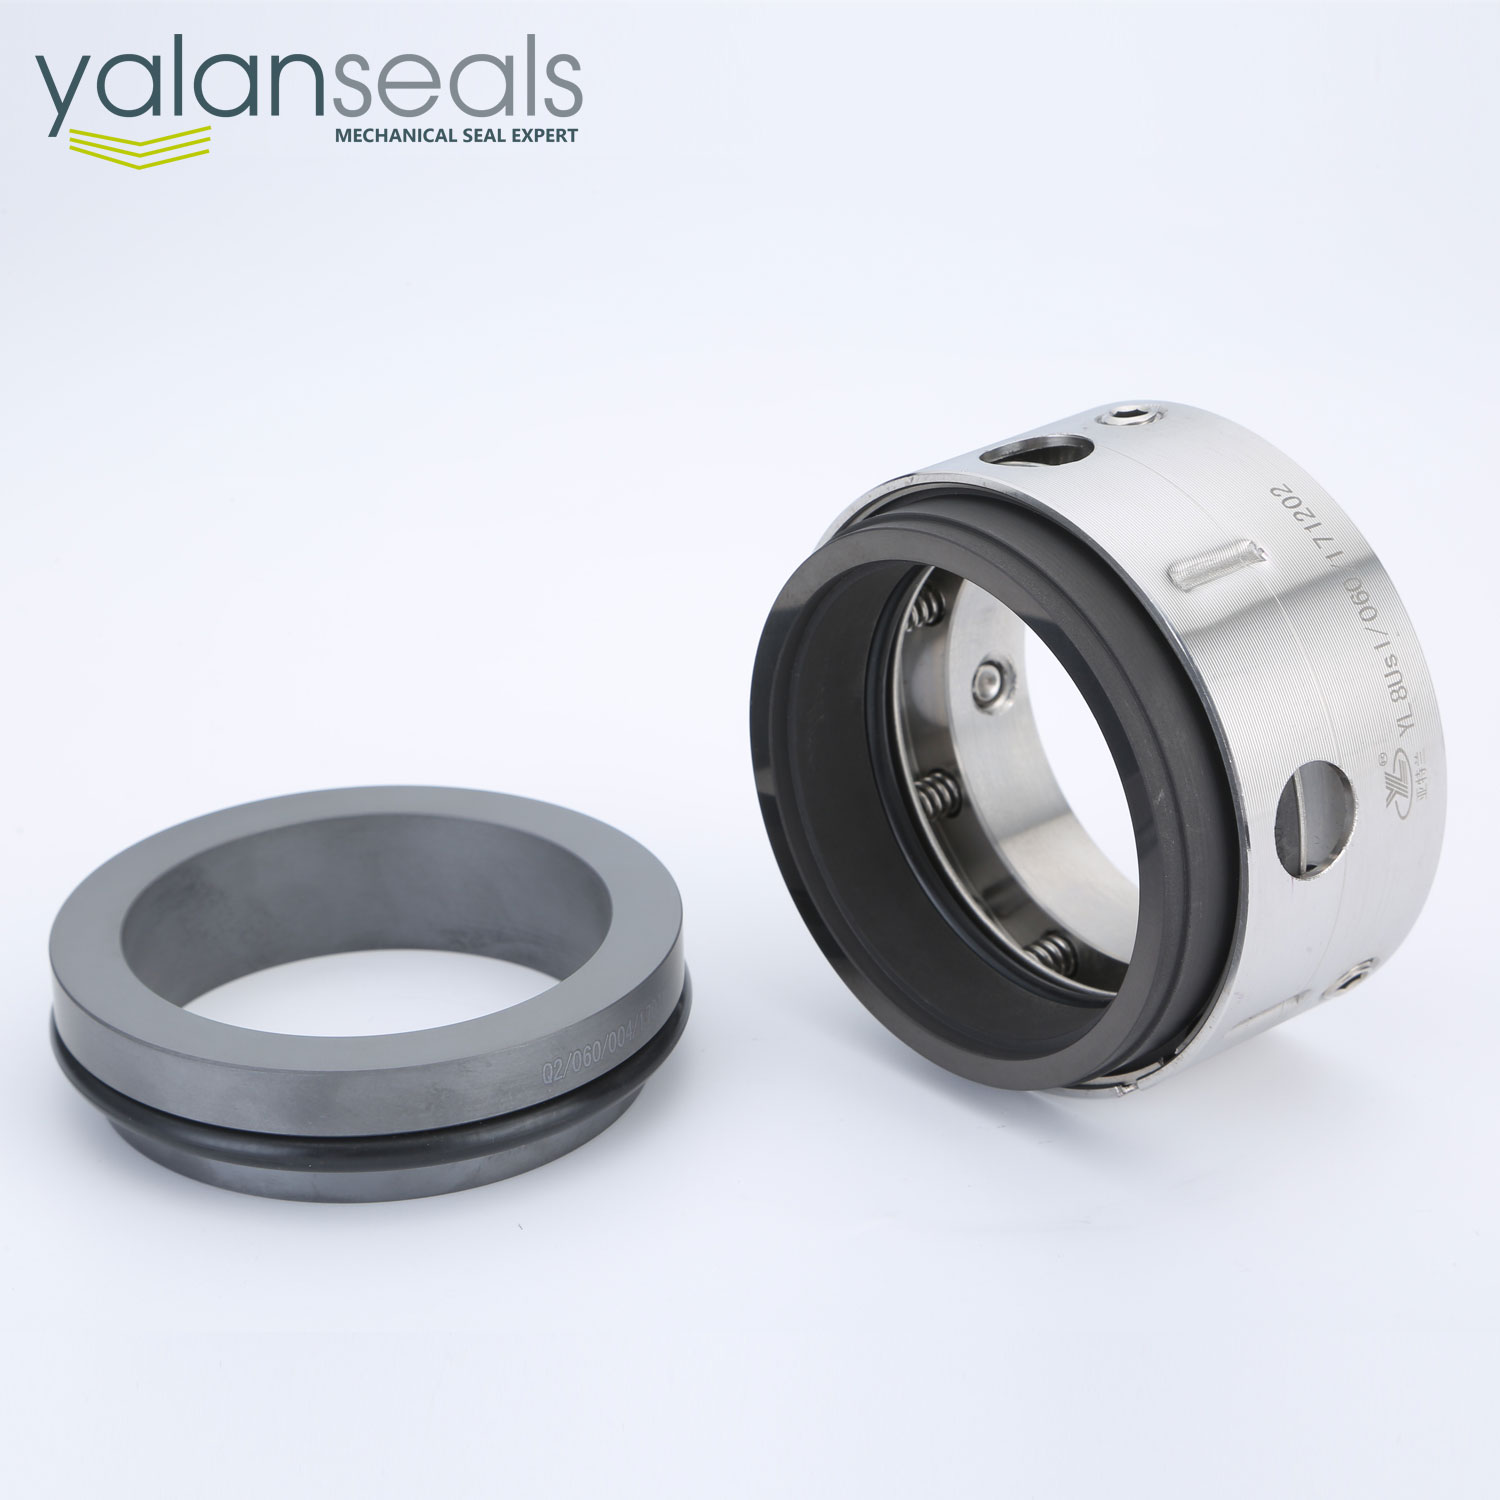 58U Mechanical Seal